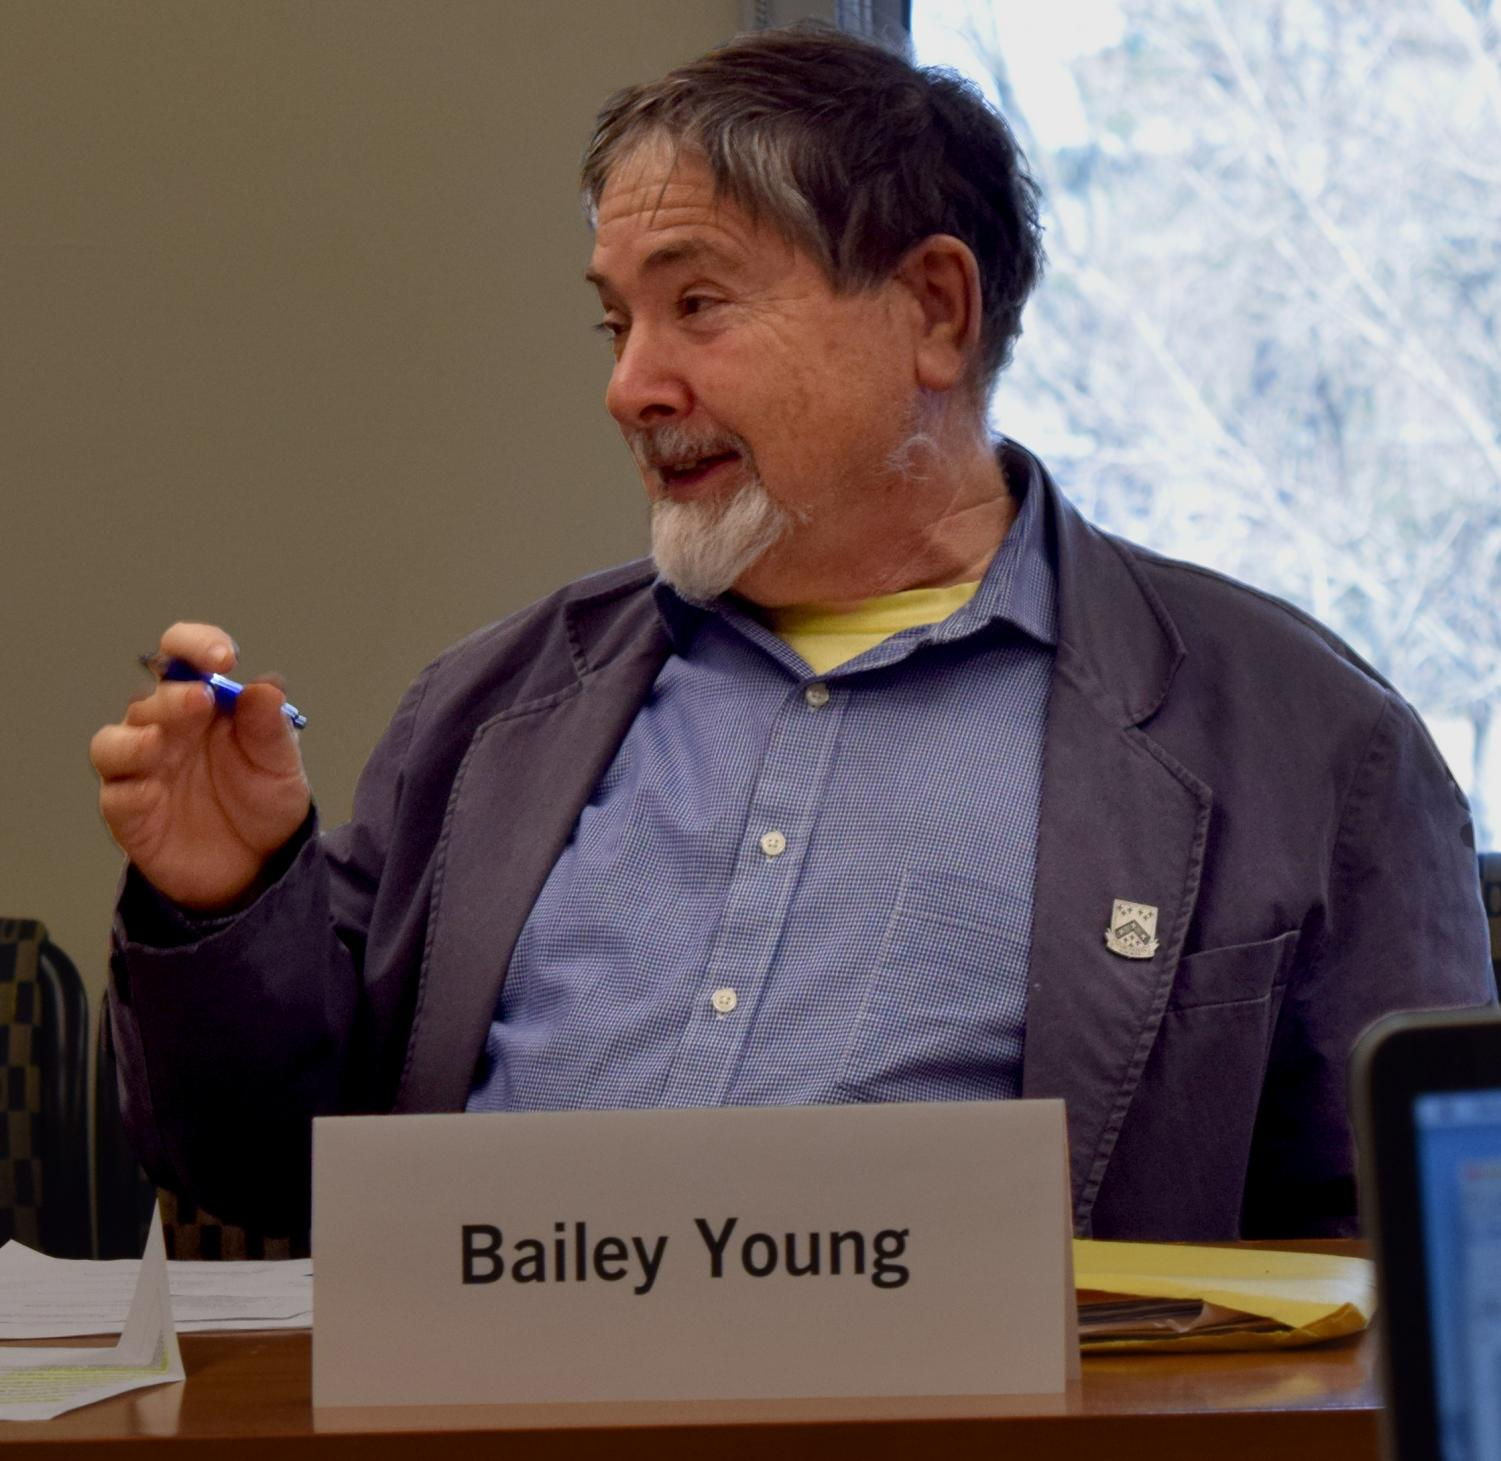 Bailey Young is a history professor and a member of the Faculty Senate. The senate decided to have one more meeting this semester on May 3 from 10:15 a.m. to 12:15 p.m.